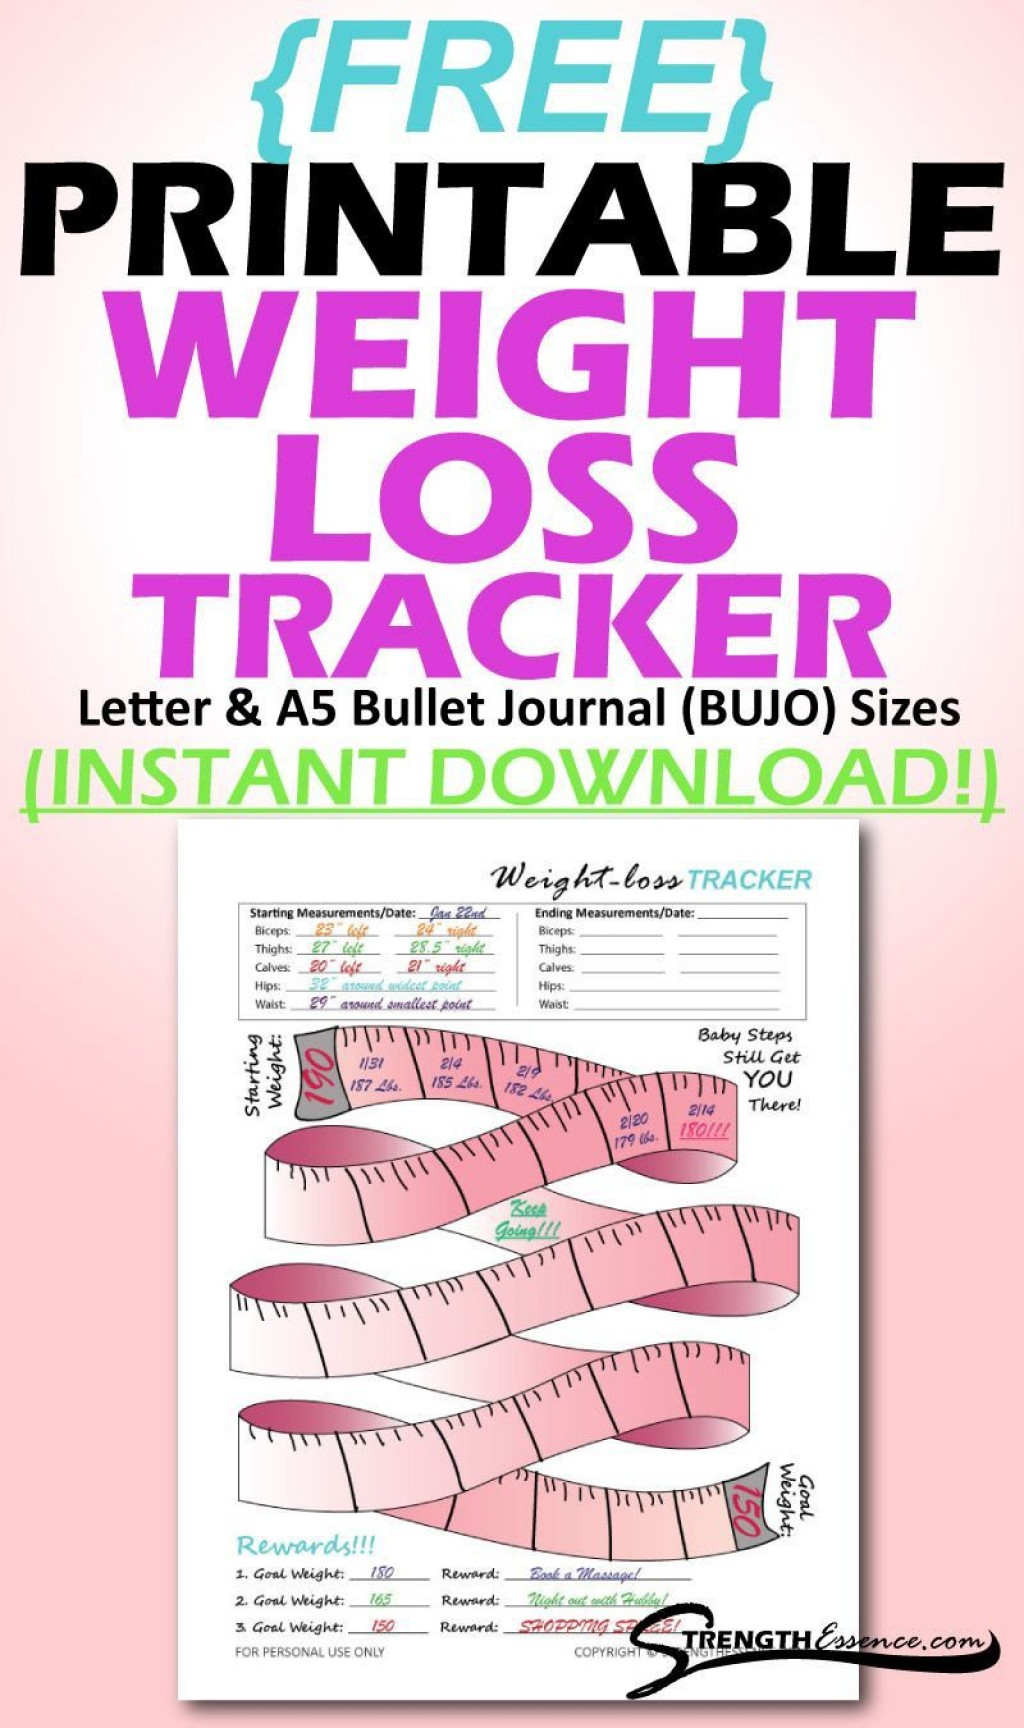 004 Shocking Weight Los Tracker Template Example  Weekly In Thi Body I Live Instagram 2019 2020Large